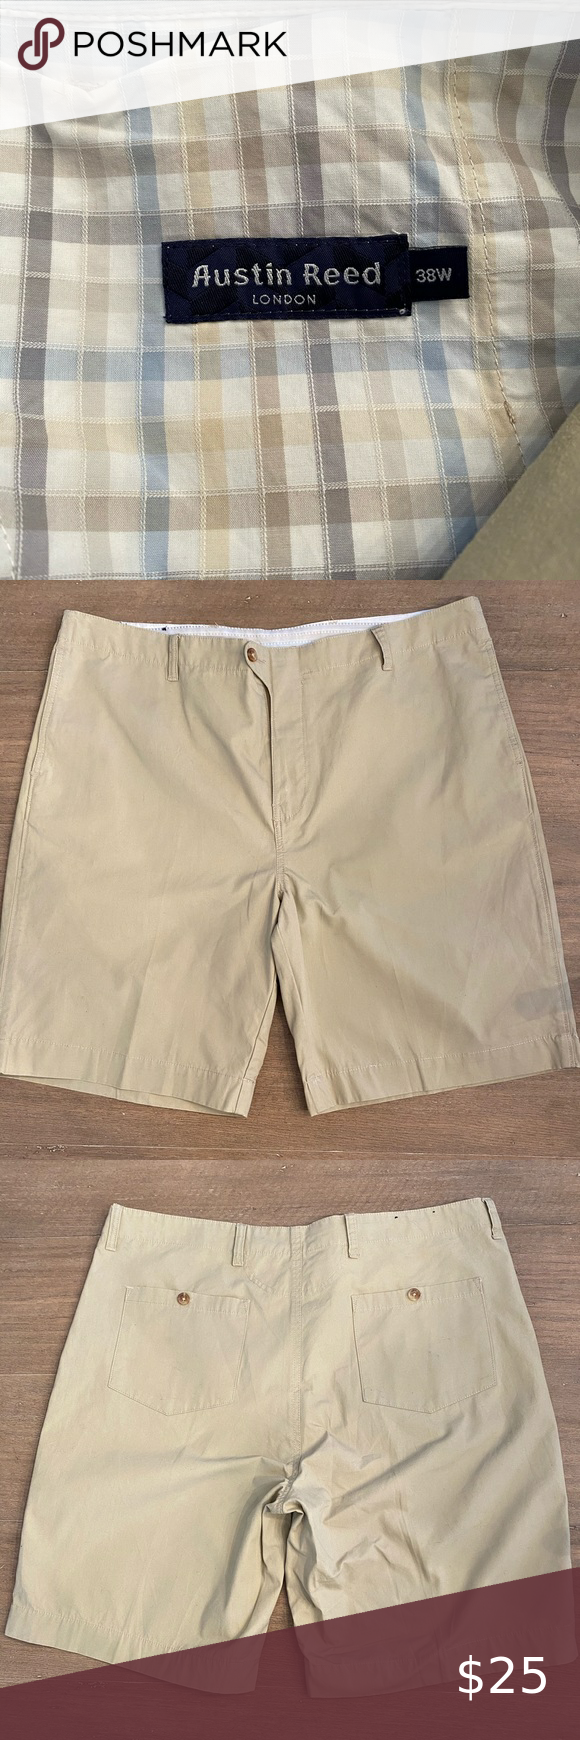 Austin Reed Shorts Austin Reed Khaki Shorts Flat Front Button Down Rear Pockets Size 38 Waist Gently Worn And Smoke Free Home Aus Austin Reed Austin Shorts